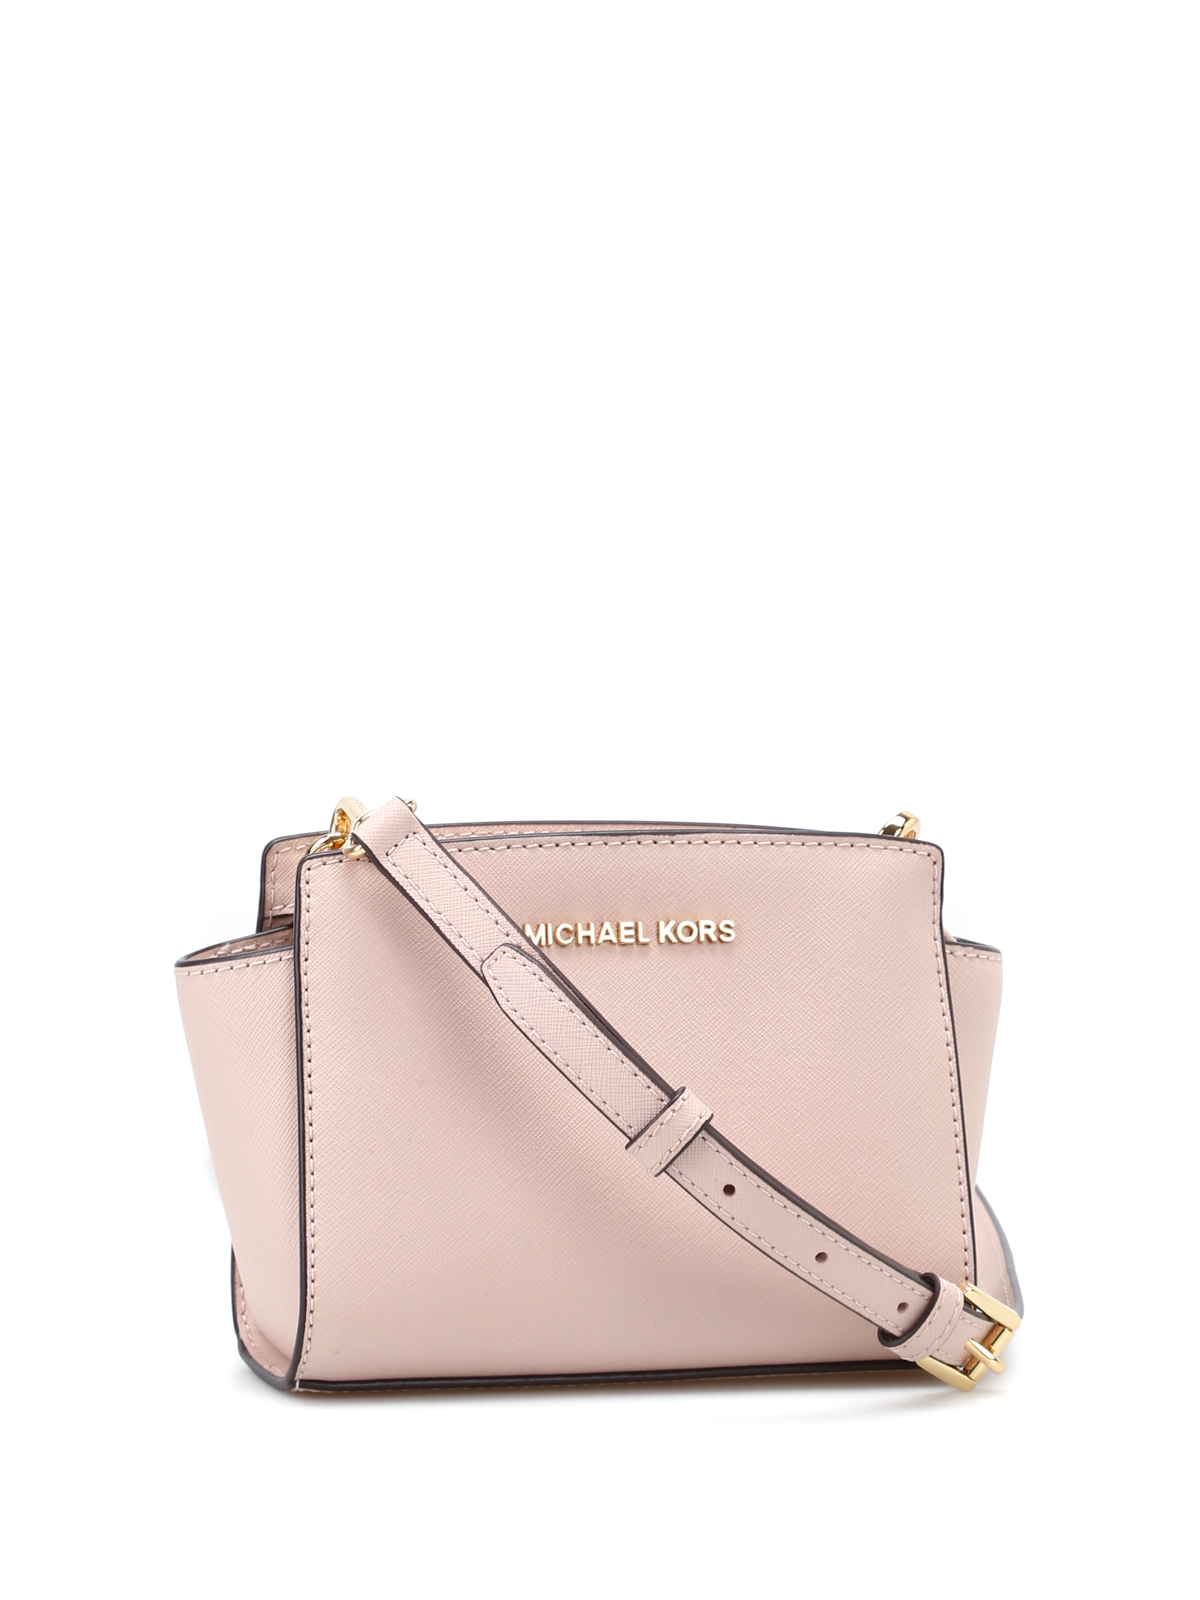 c71097ef5a7f77 MICHAEL KORS: cross body bags online - Selma mini soft pink messenger bag